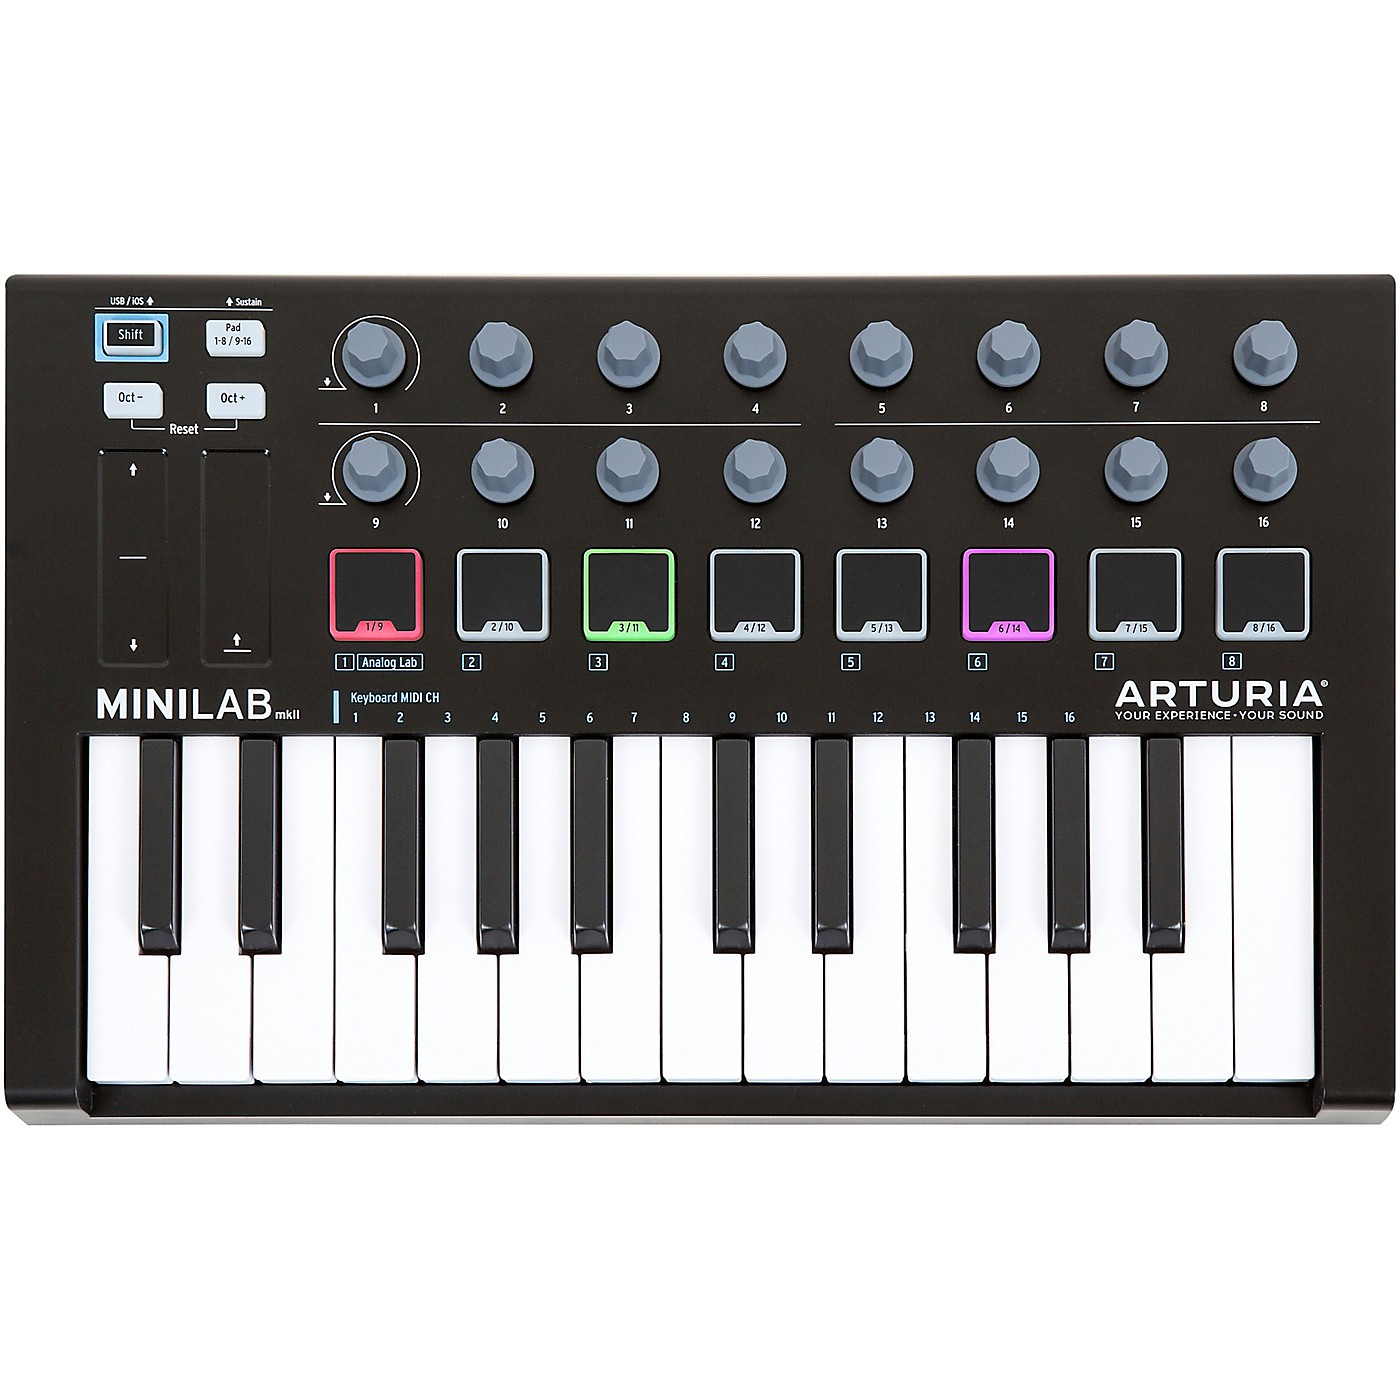 Arturia MiniLab MkII Keyboard Controller and Software Bundle Limited Black Edition thumbnail